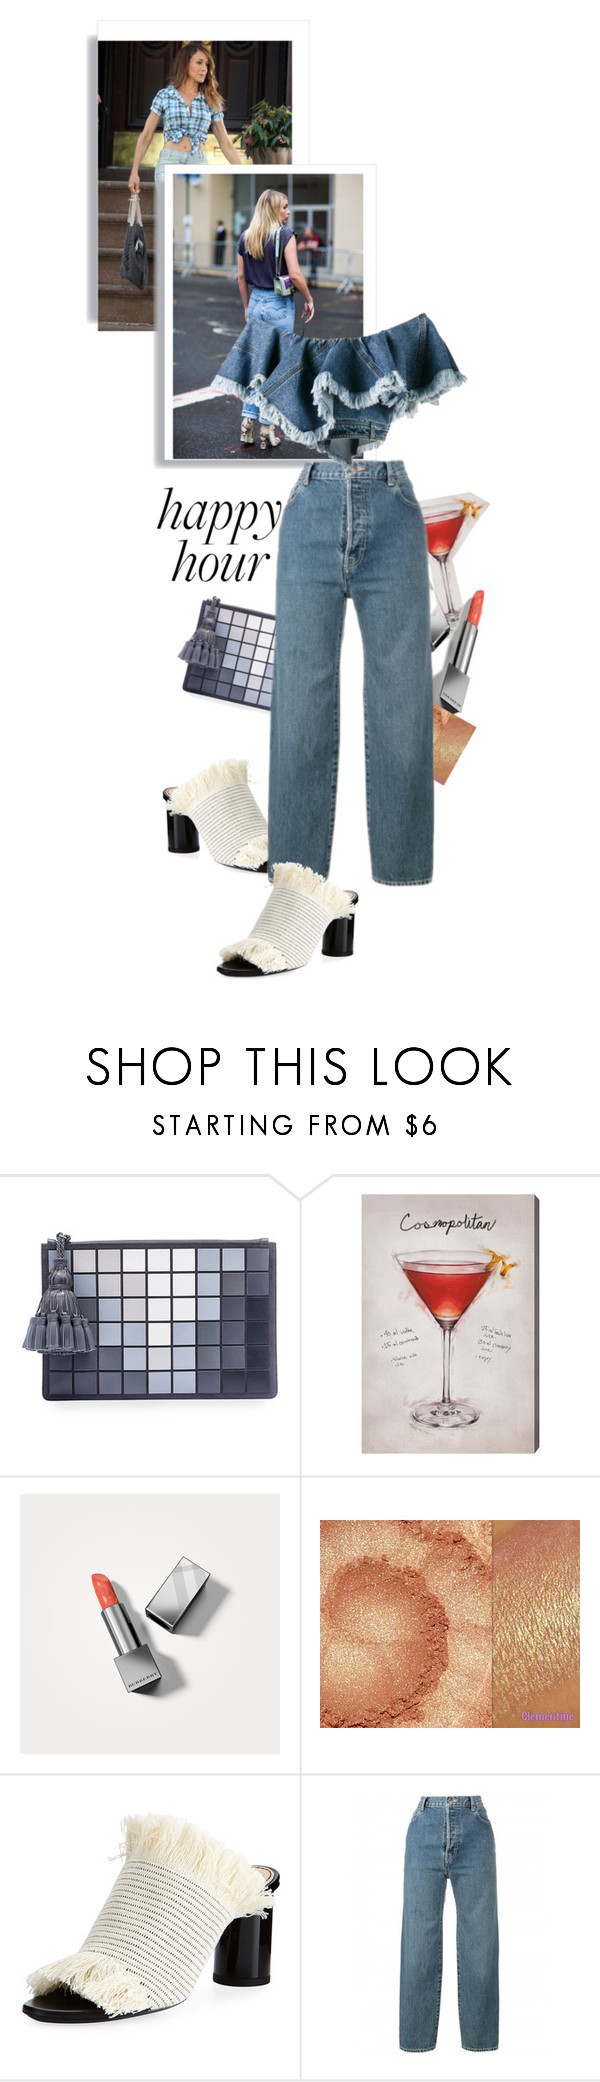 """""""Hello Carrie Shall we drink?"""" by black-eclipse-red-sky ❤ liked on Polyvore featuring Anya Hindmarch, Oliver Gal Artist Co., Burberry, Proenza Schouler, Levi's, Philosophy di Lorenzo Serafini, denim, peach, carriebradshaw and happyhour"""